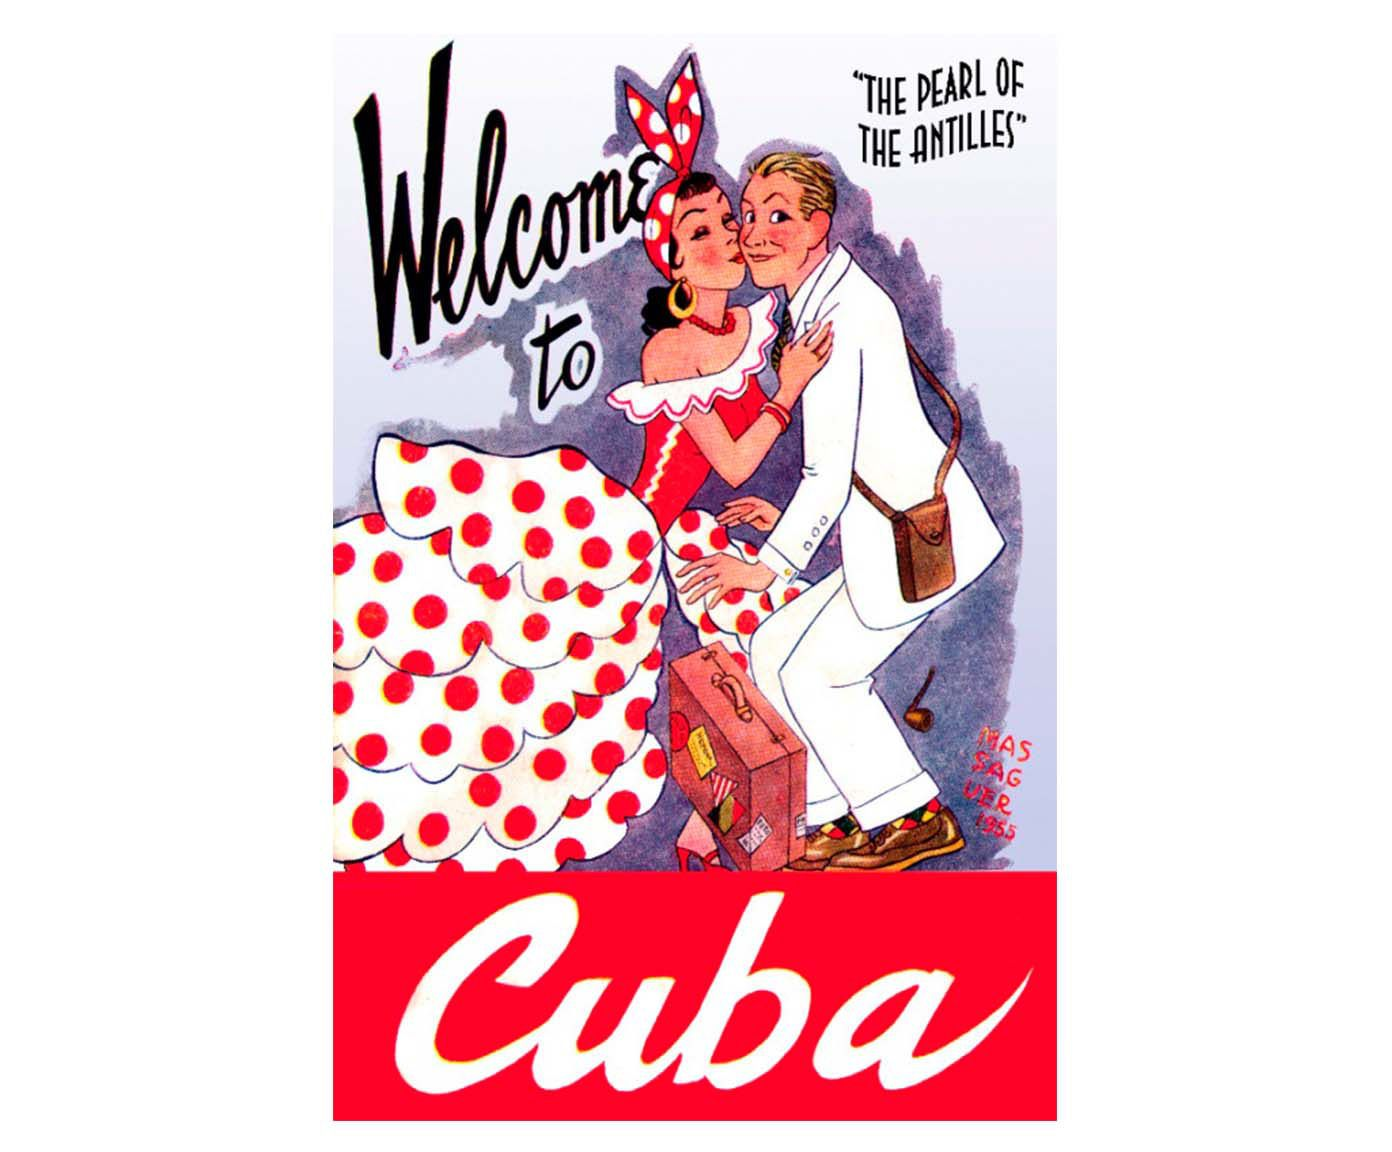 Gravura welcome to cuba | Westwing.com.br